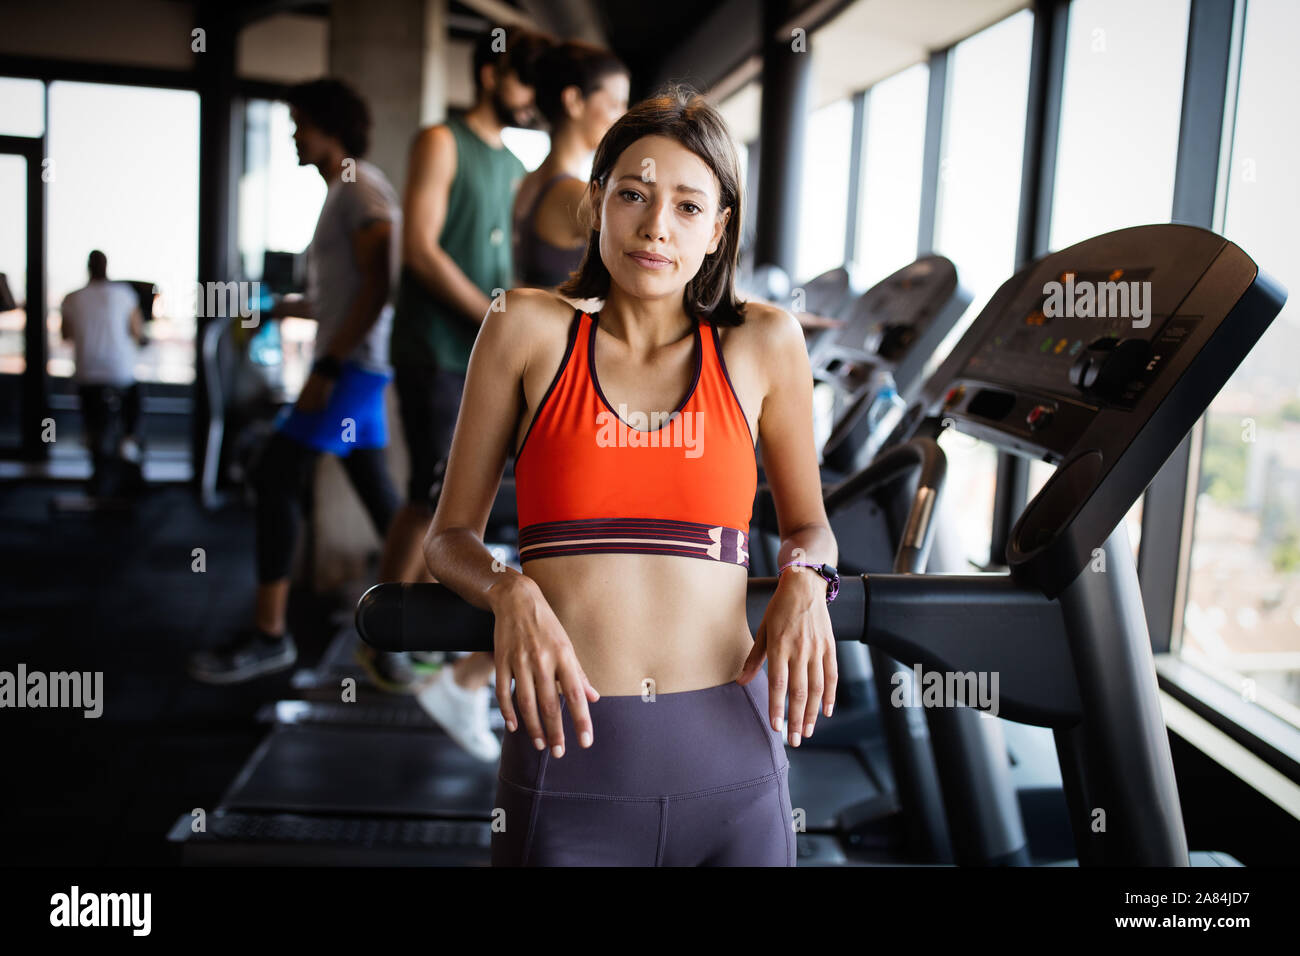 Disappointed tired woman trying to reach fitness goals by endurance and stamina training Stock Photo